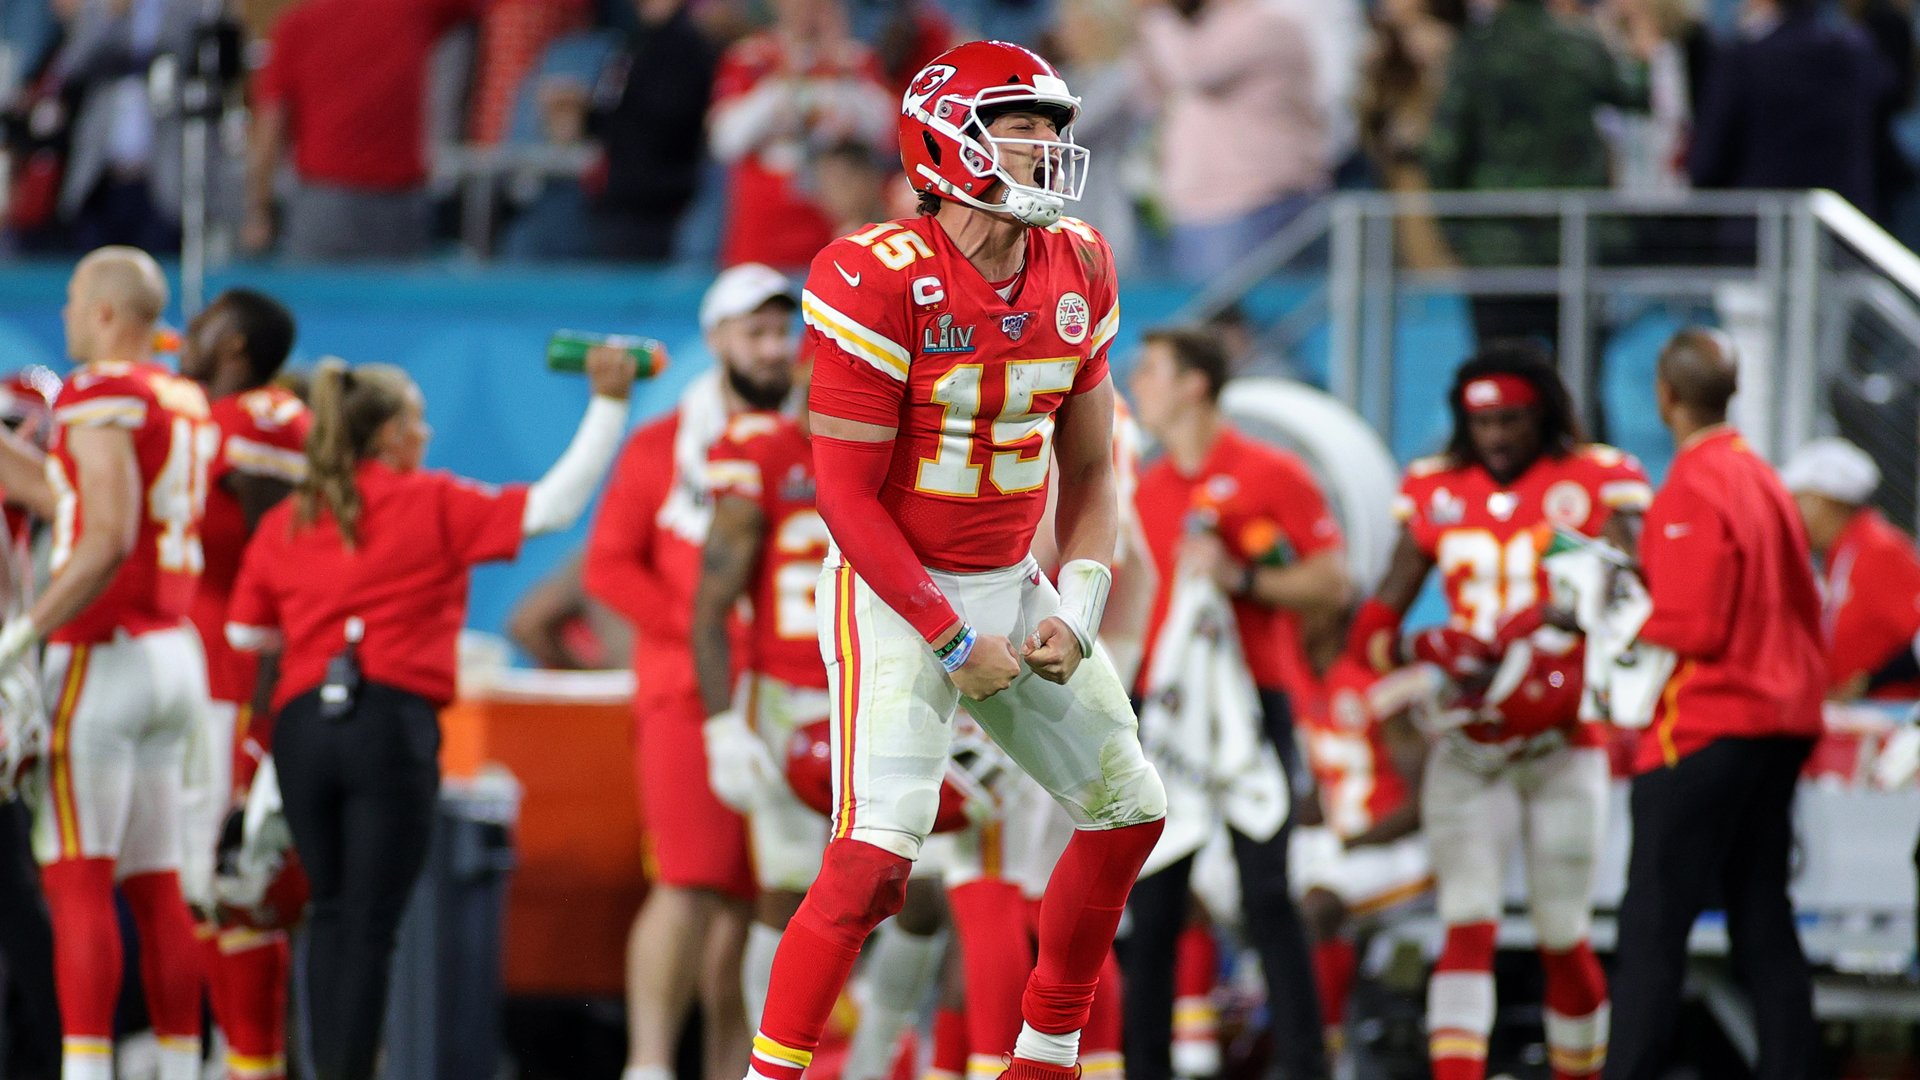 Patrick Mahomes #15 of the Kansas City Chiefs celebrates after throwing a touchdown pass against the San Francisco 49ers during the fourth quarter in Super Bowl LIV at Hard Rock Stadium on February 02, 2020 in Miami, Florida. (Credit: Maddie Meyer/Getty Images)